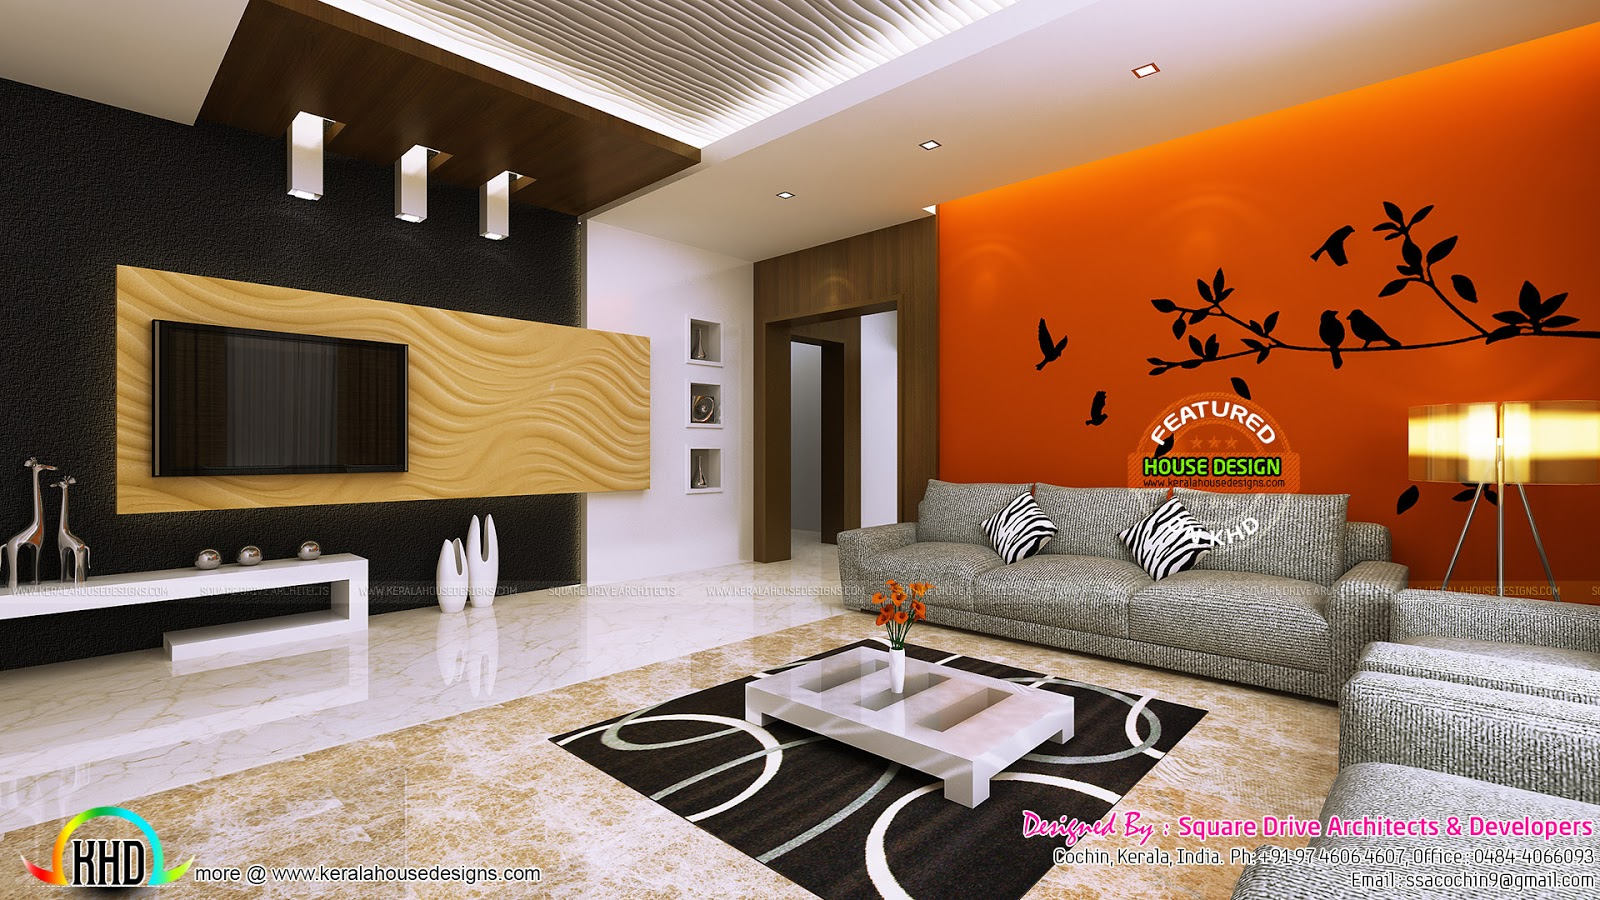 Kerala home interior design living room picture for Interior design of room